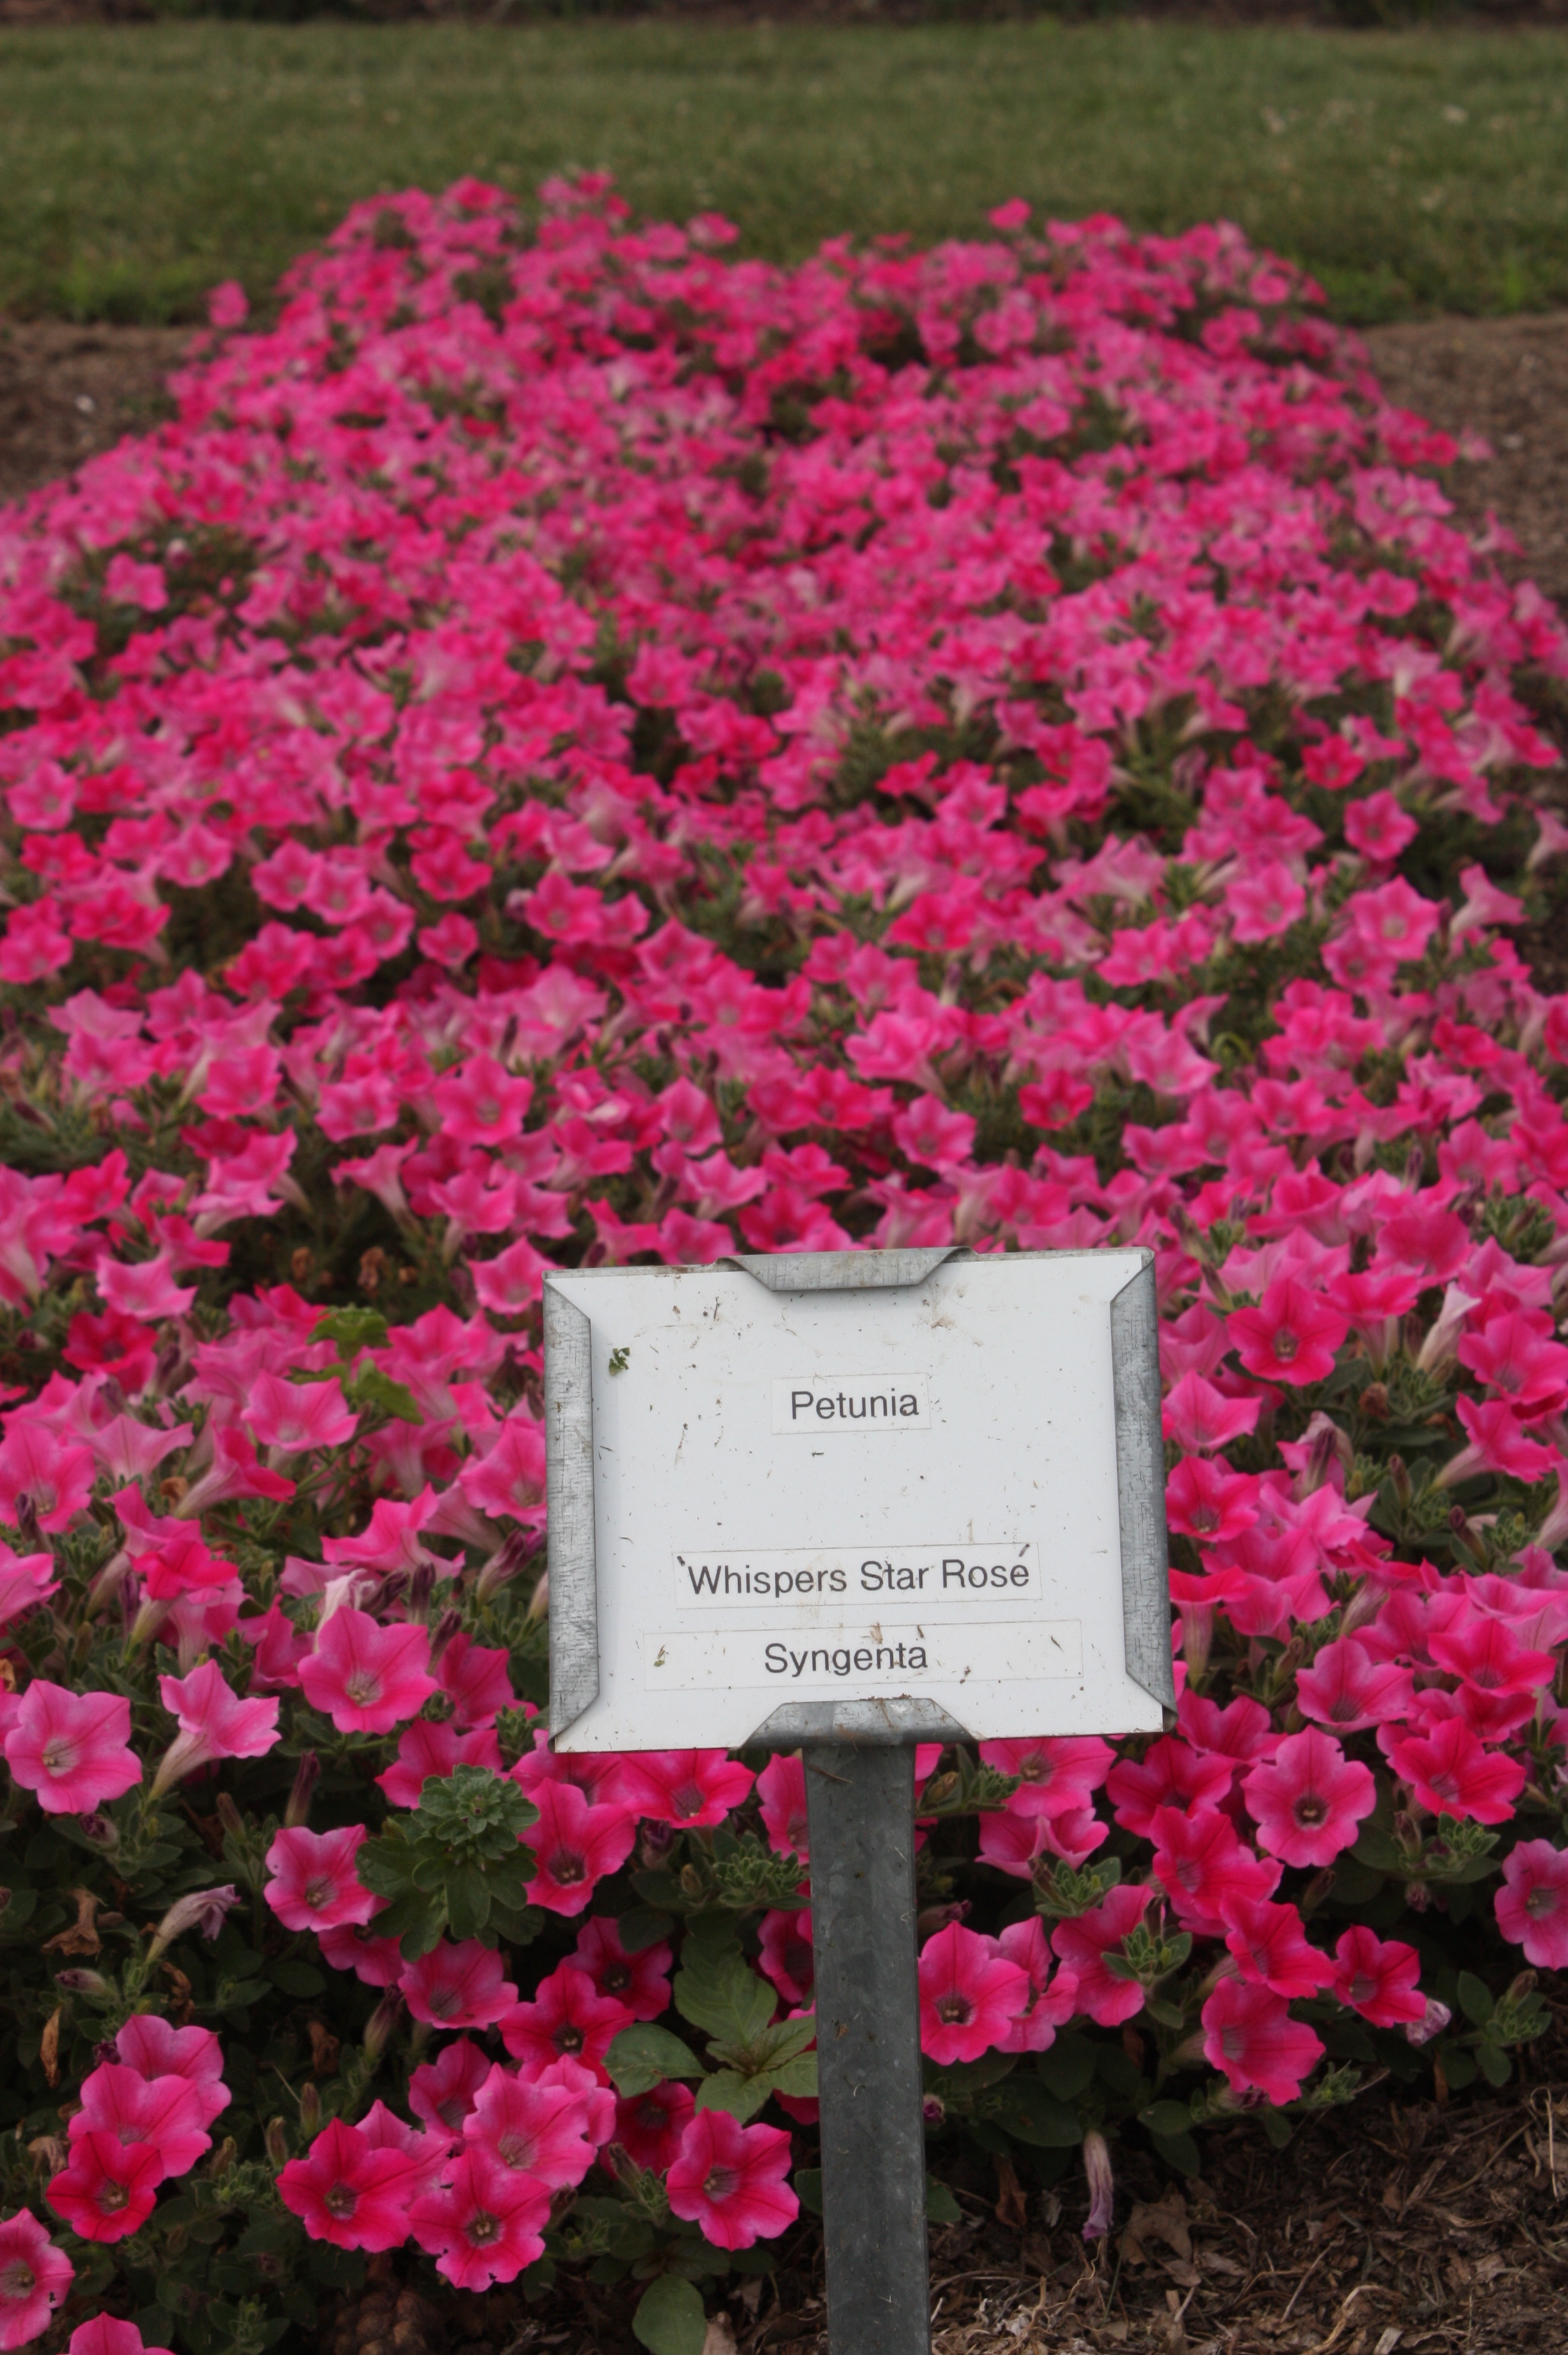 Whisper Star Rose - Petunia